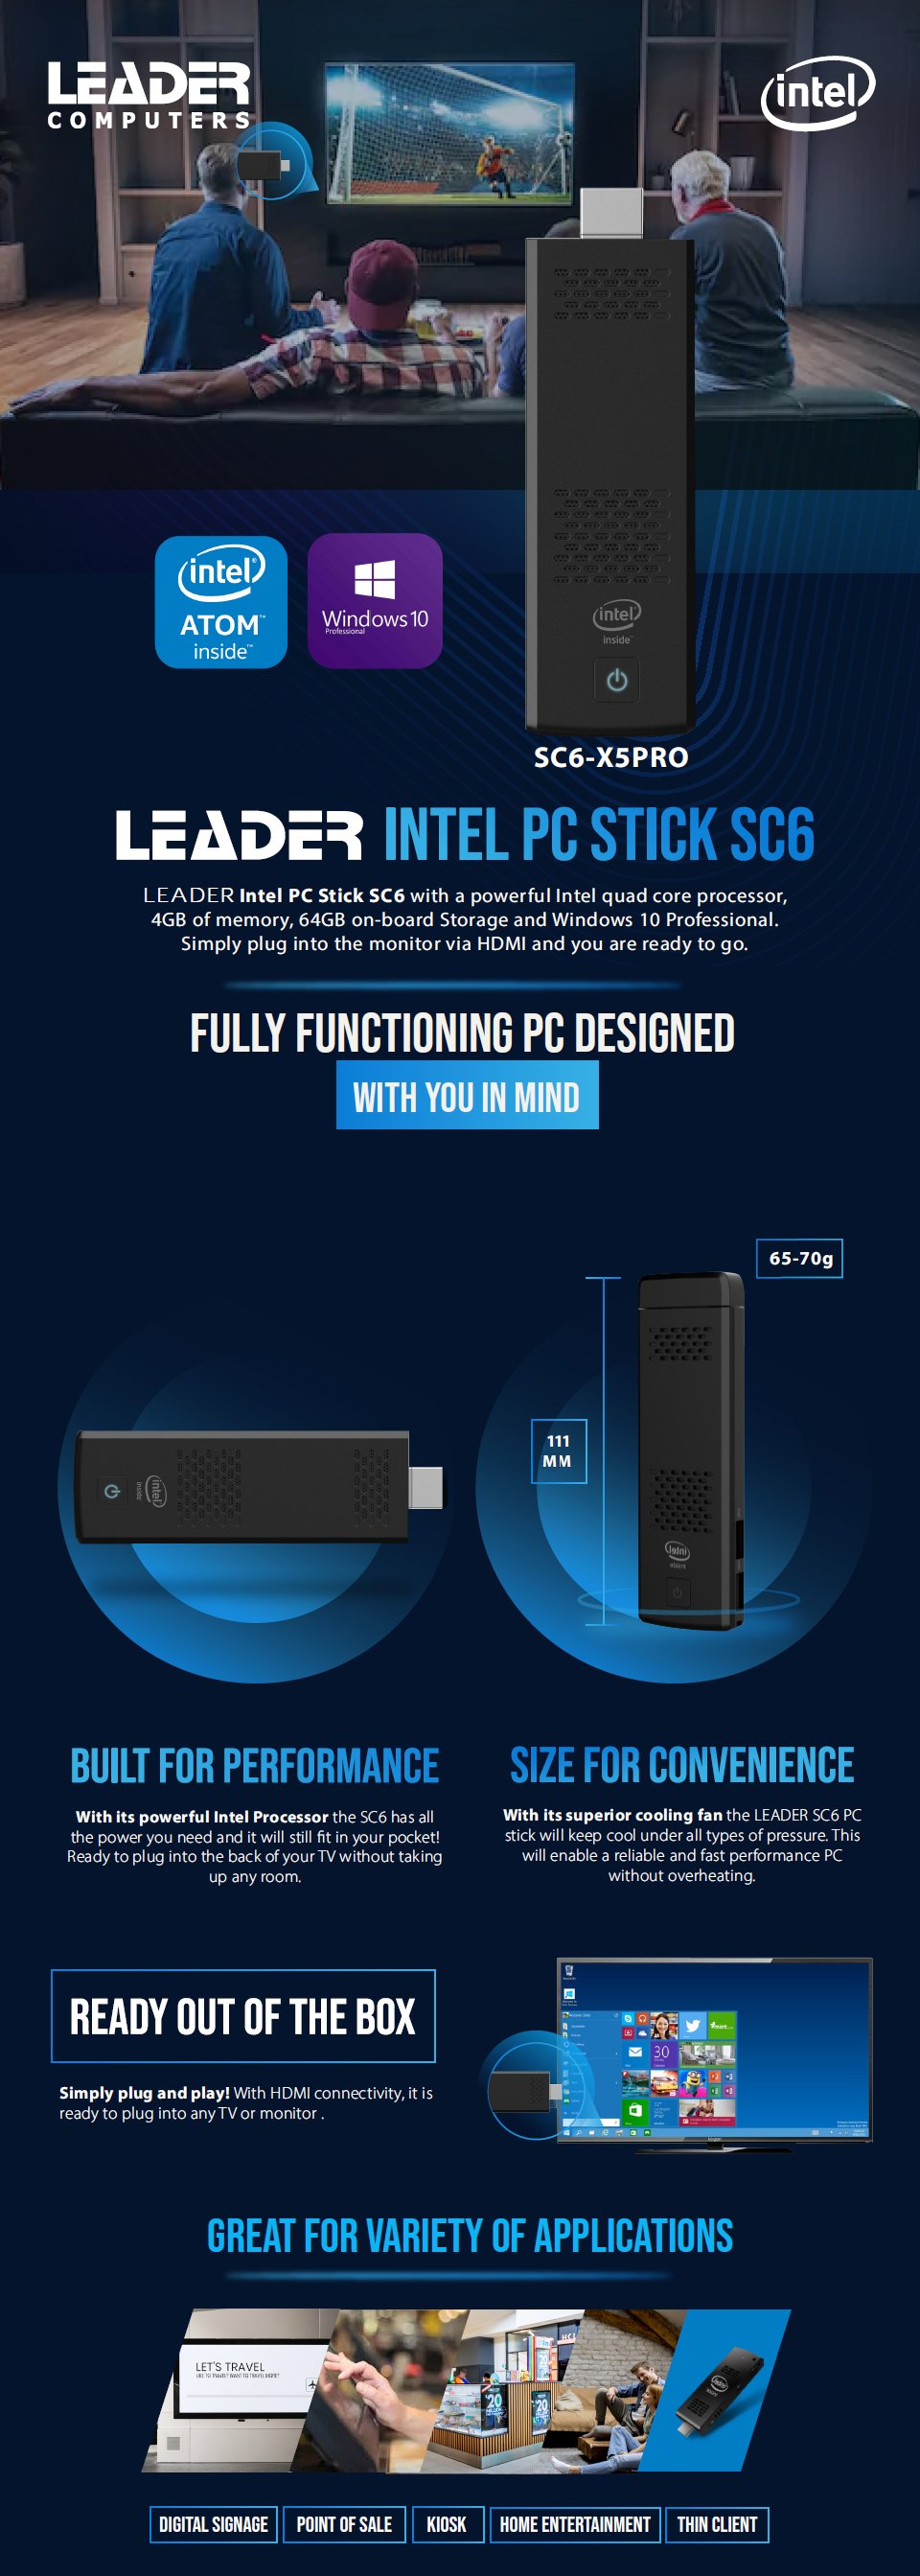 PC On A Stick ProStick SC6 Intel Inside features